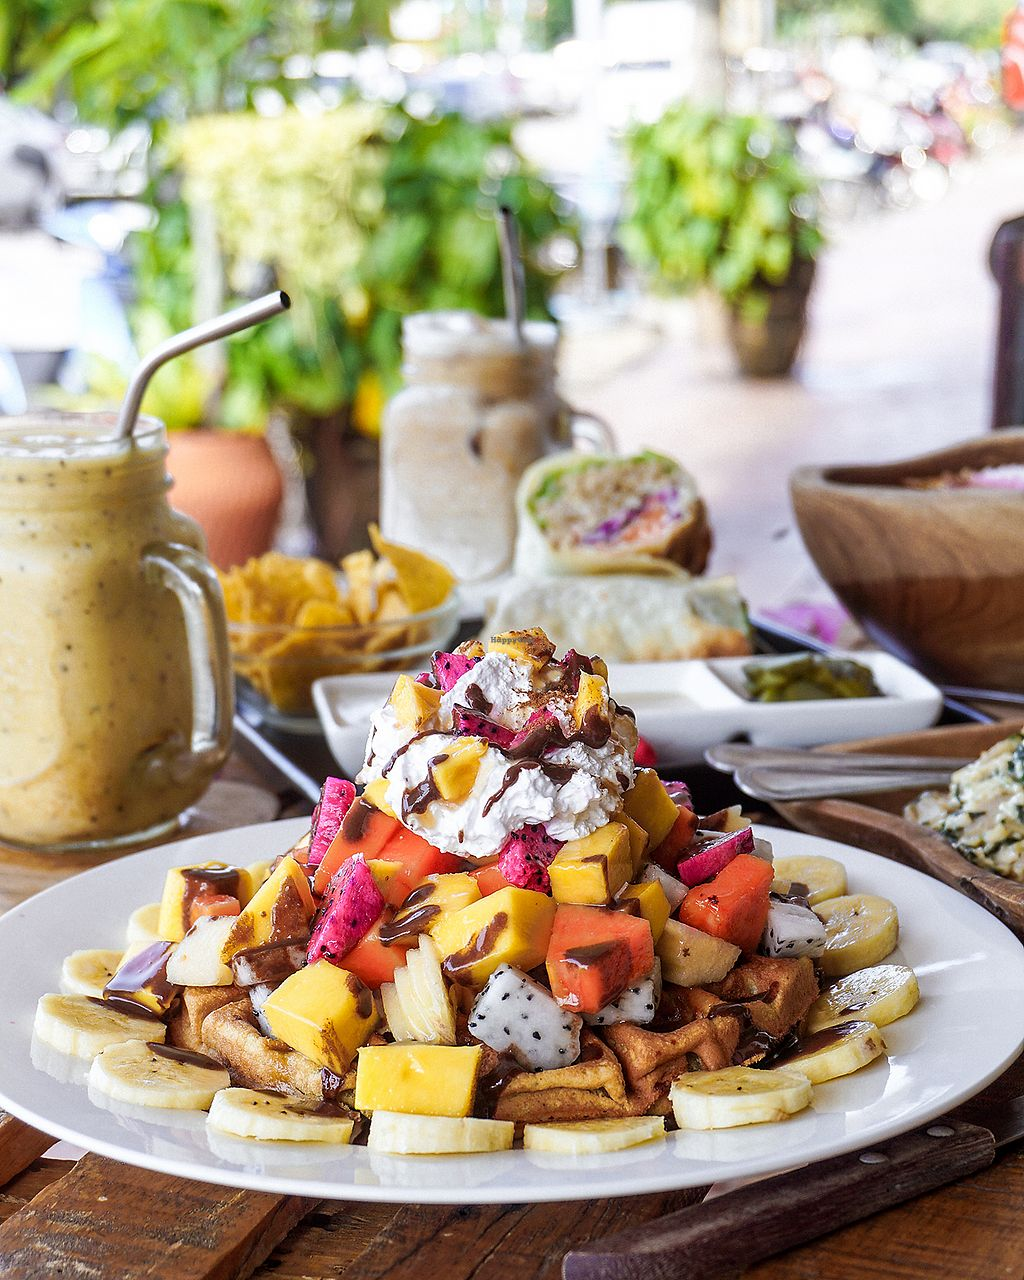 """Photo of Eat Co 2  by <a href=""""/members/profile/KirstenK"""">KirstenK</a> <br/>Waffle heaven <br/> December 16, 2017  - <a href='/contact/abuse/image/44676/336058'>Report</a>"""